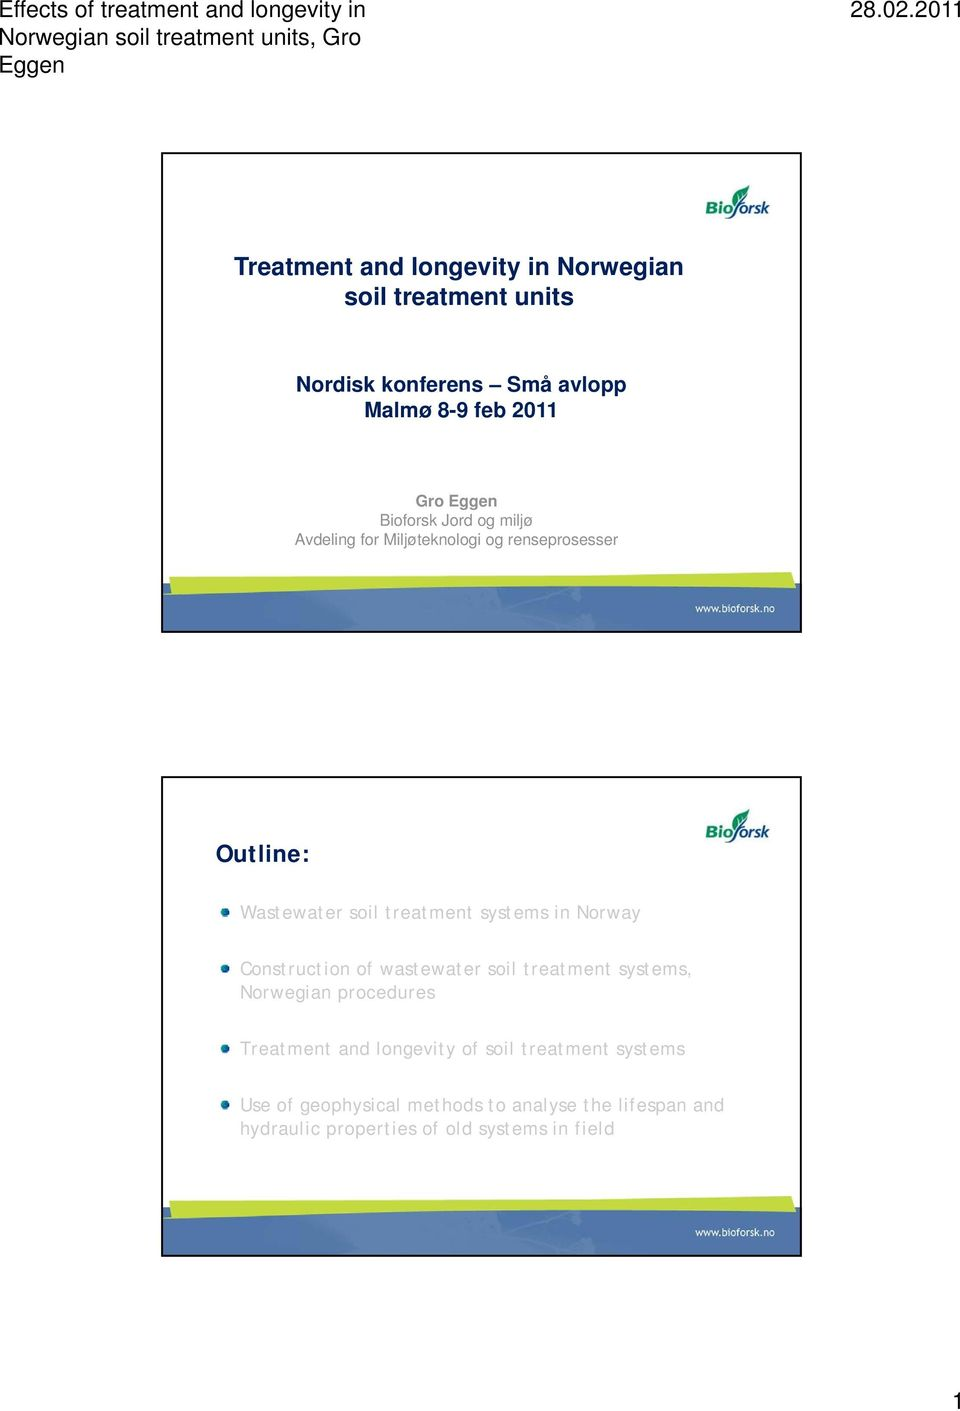 in Norway Construction of wastewater soil treatment systems, Norwegian procedures Treatment and longevity of soil